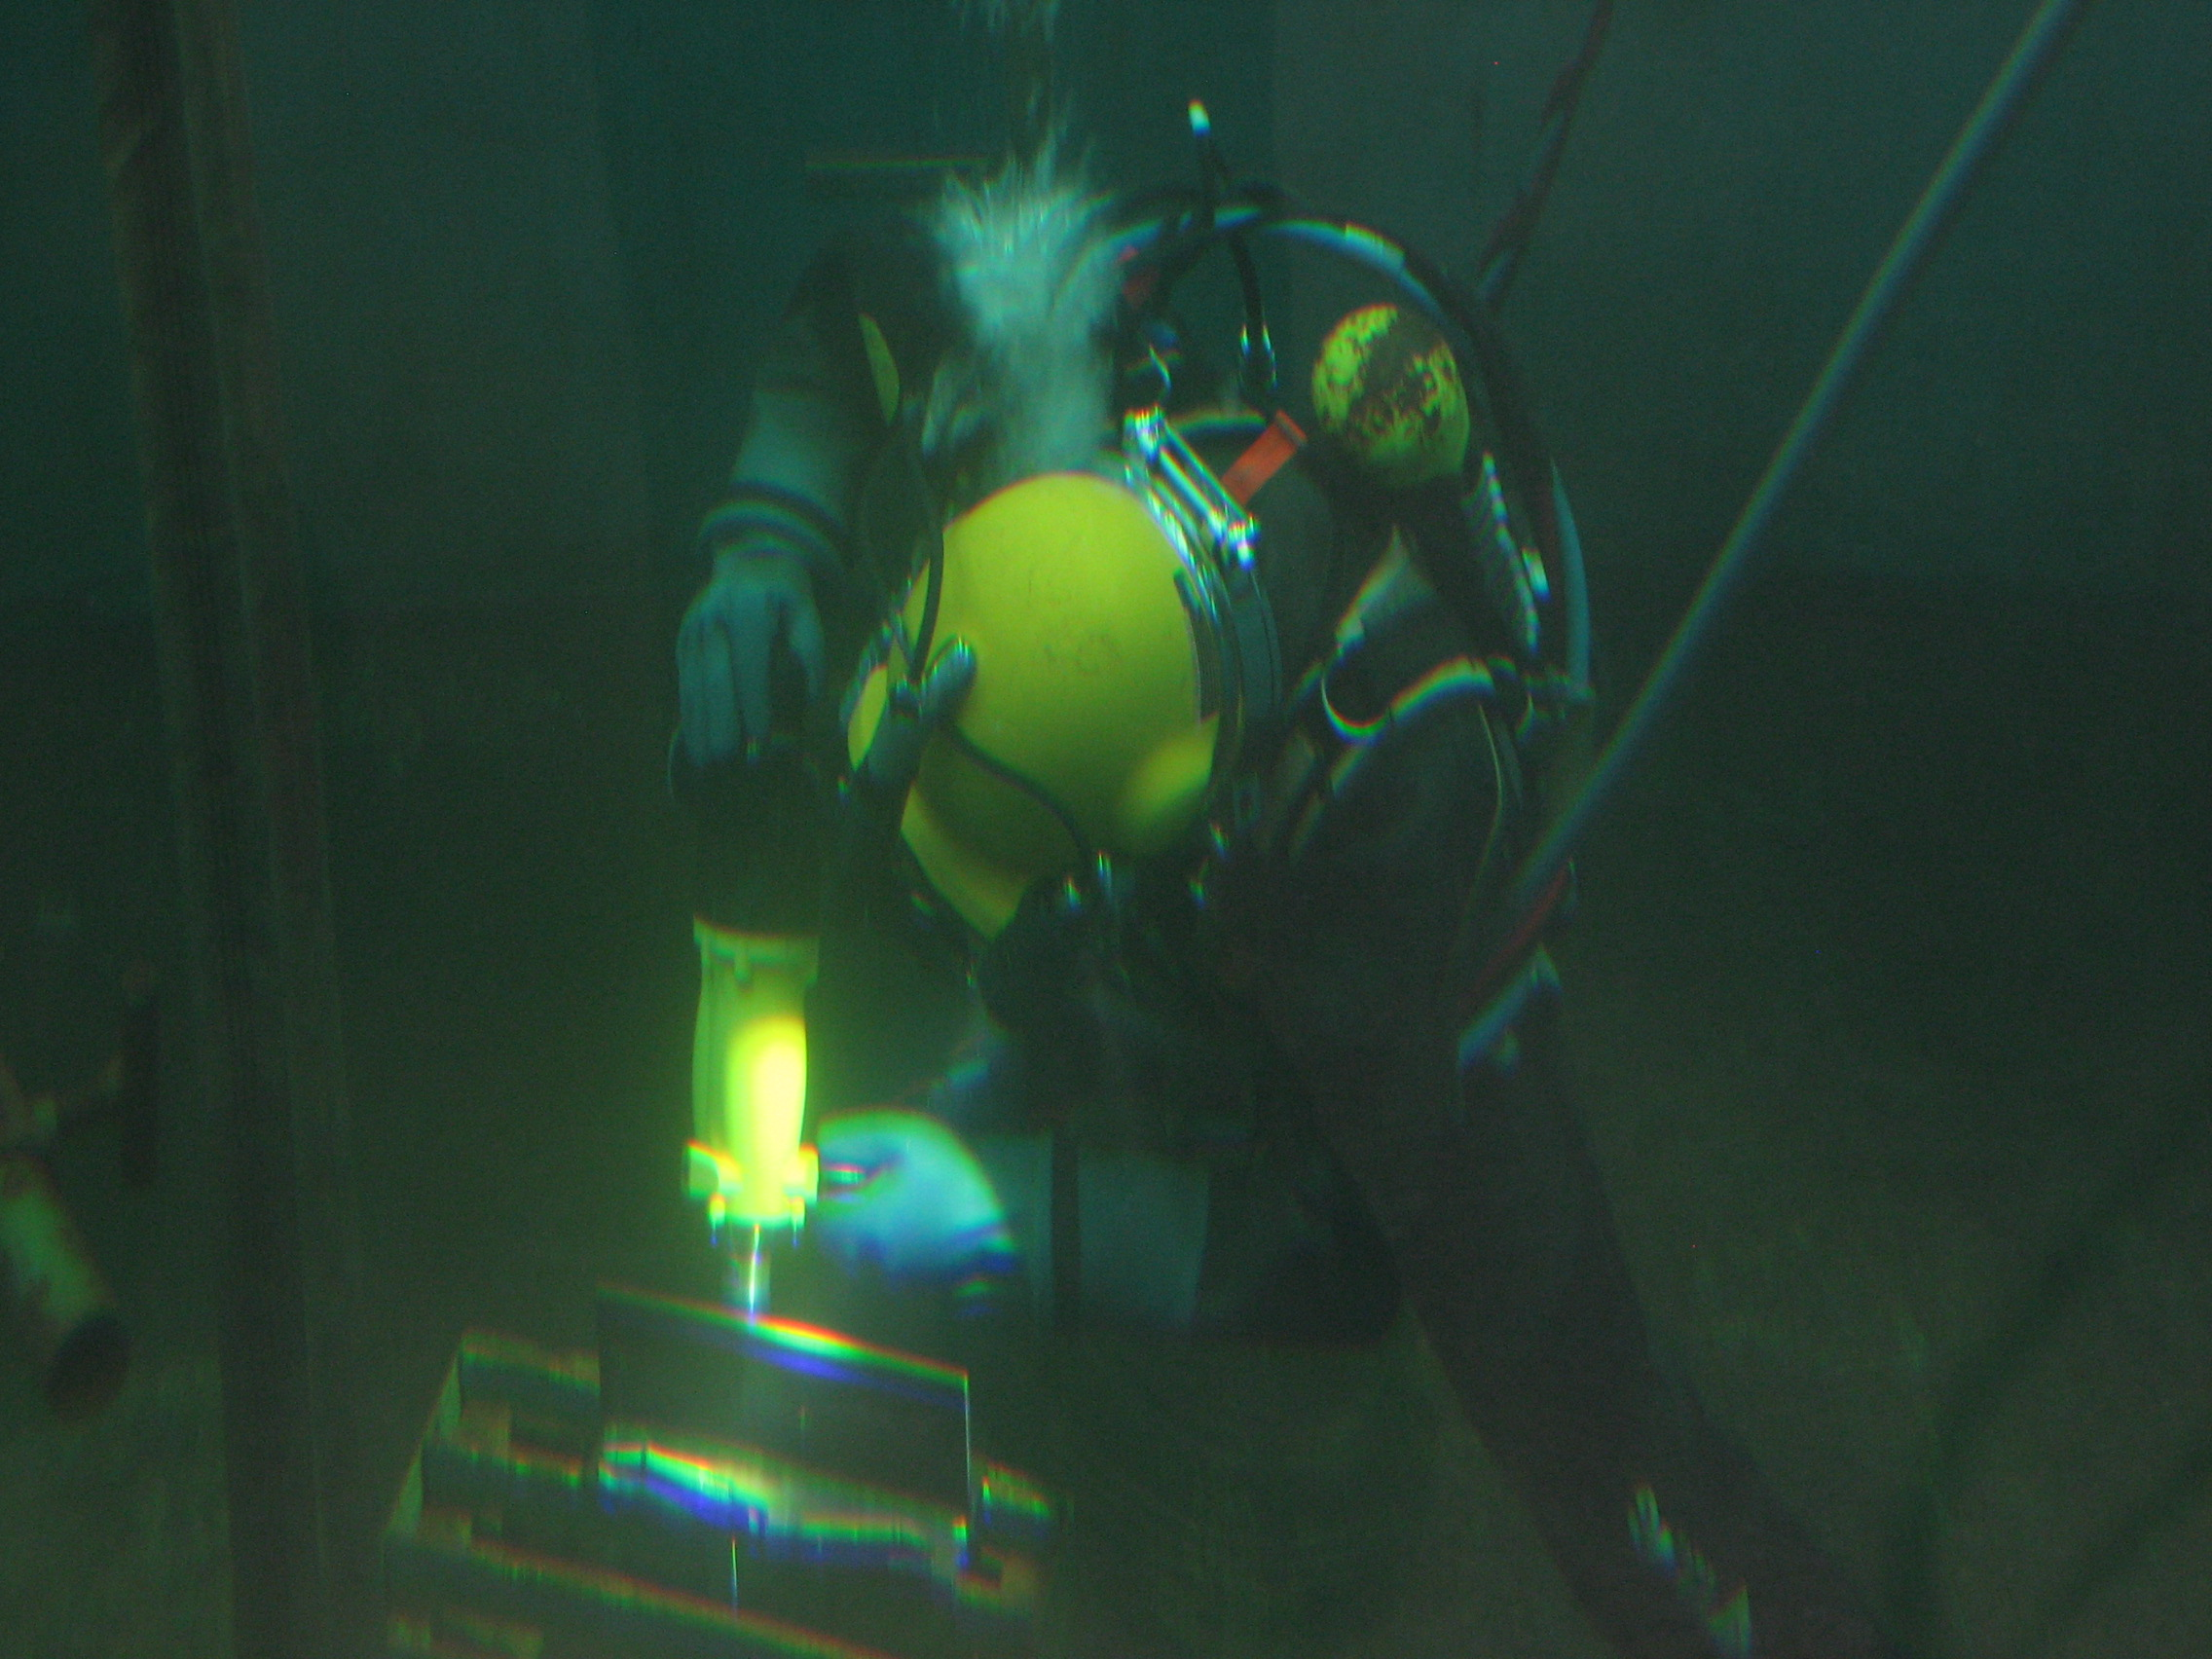 HFMI - PIT System Weld Line 10 - Underwater device - Application under water